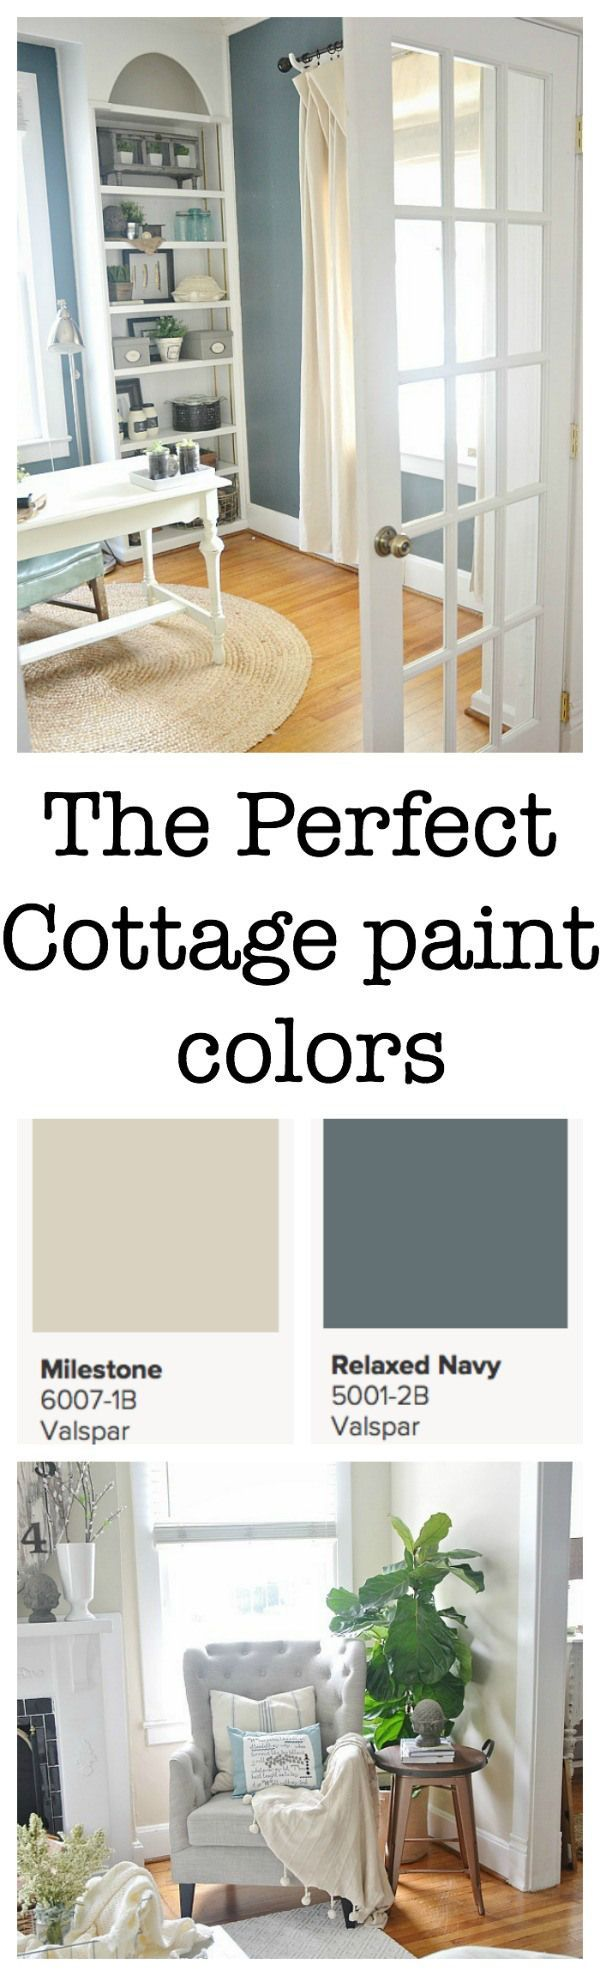 17 Best Ideas About Cottage Paint Colors On Pinterest Fixer Upper Paint Colors Interior Color